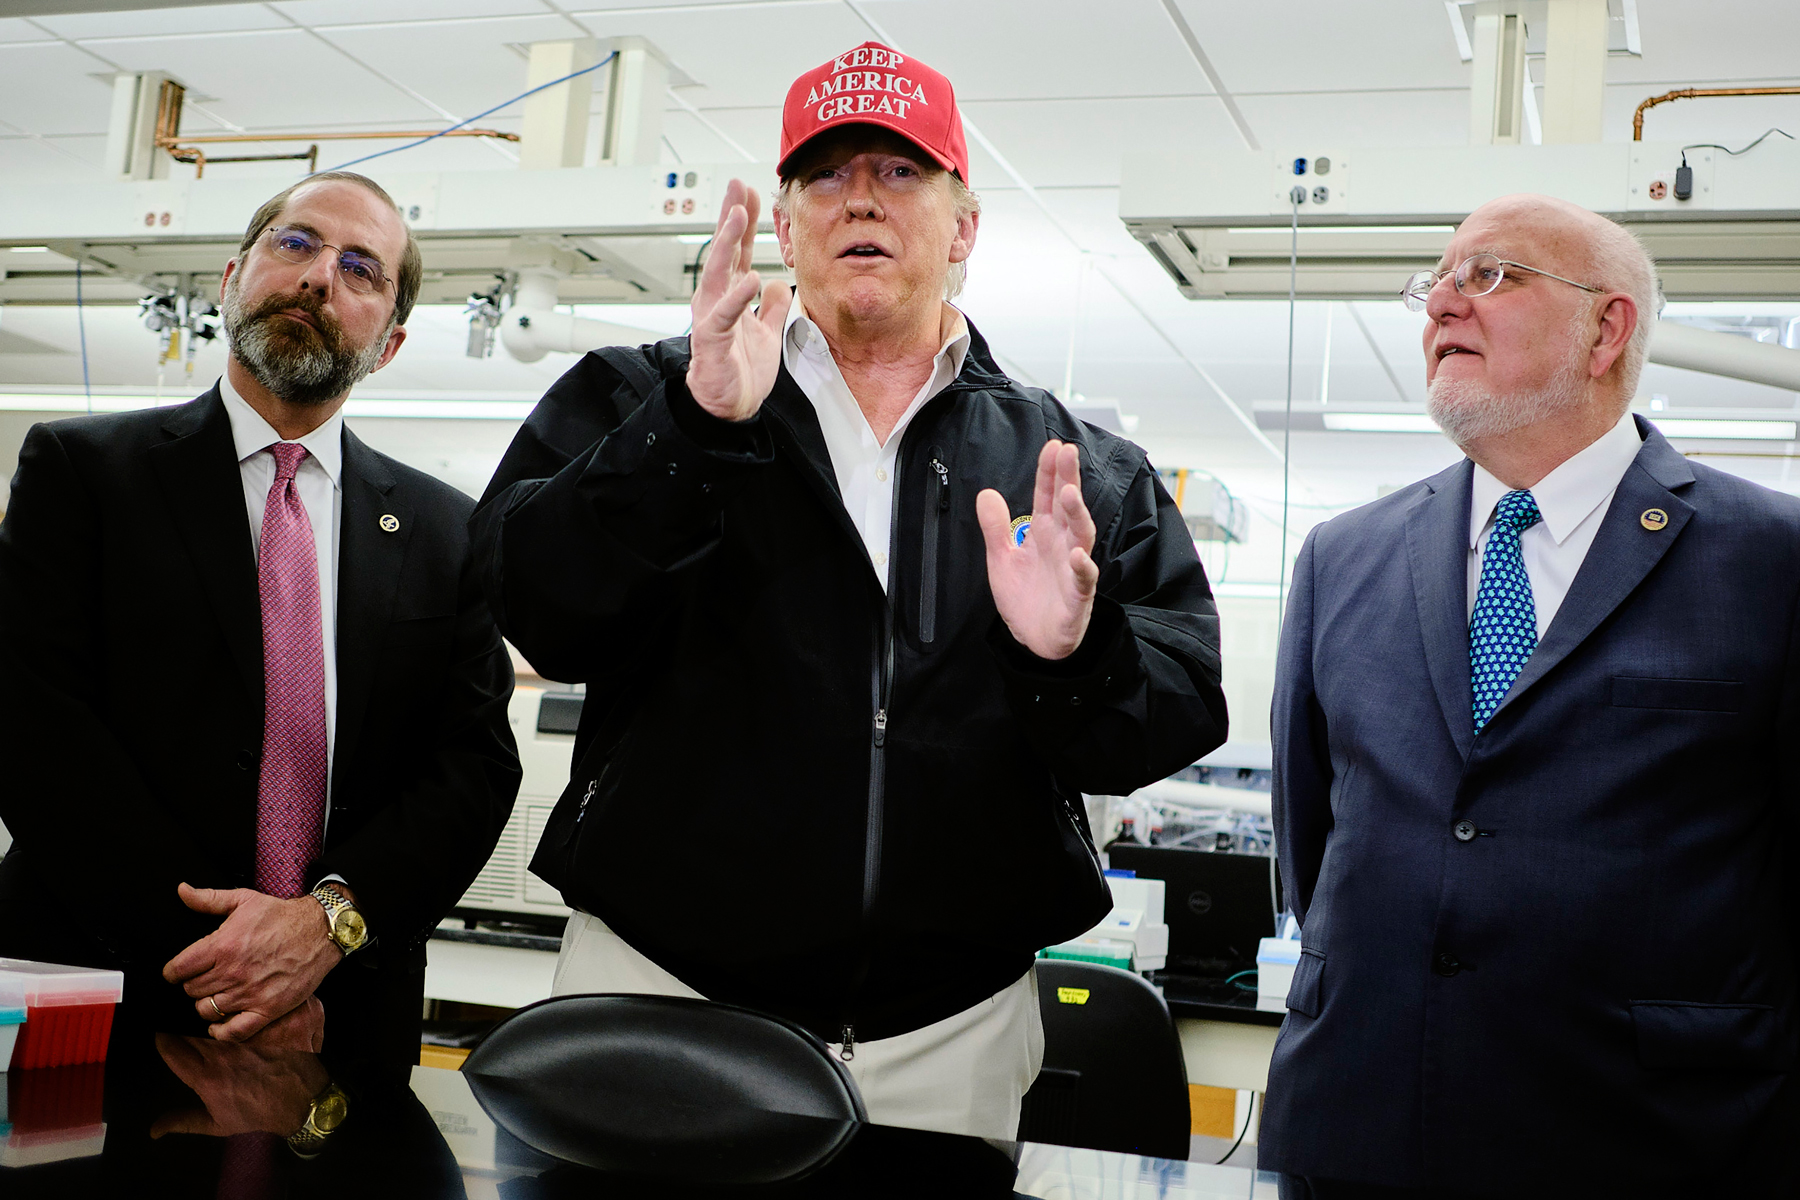 President Donald Trump, accompanied by Health and Human Services Secretary Alex Azar, left, Centers for Disease Control and Prevention Director Dr. Robert Redfield, right, speaks during a visit to the CDC in Atlanta, Friday, March 6, 2020. Trump signed an $8.3 billion emergency spending bill to confront the coronavirus outbreak on Friday morning and decided to visit the CDC in Atlanta, reversing his decision hours earlier to skip touring the nerve center of the government's response to the health crisis. (T.J. Kirkpatrick/The New York Times)